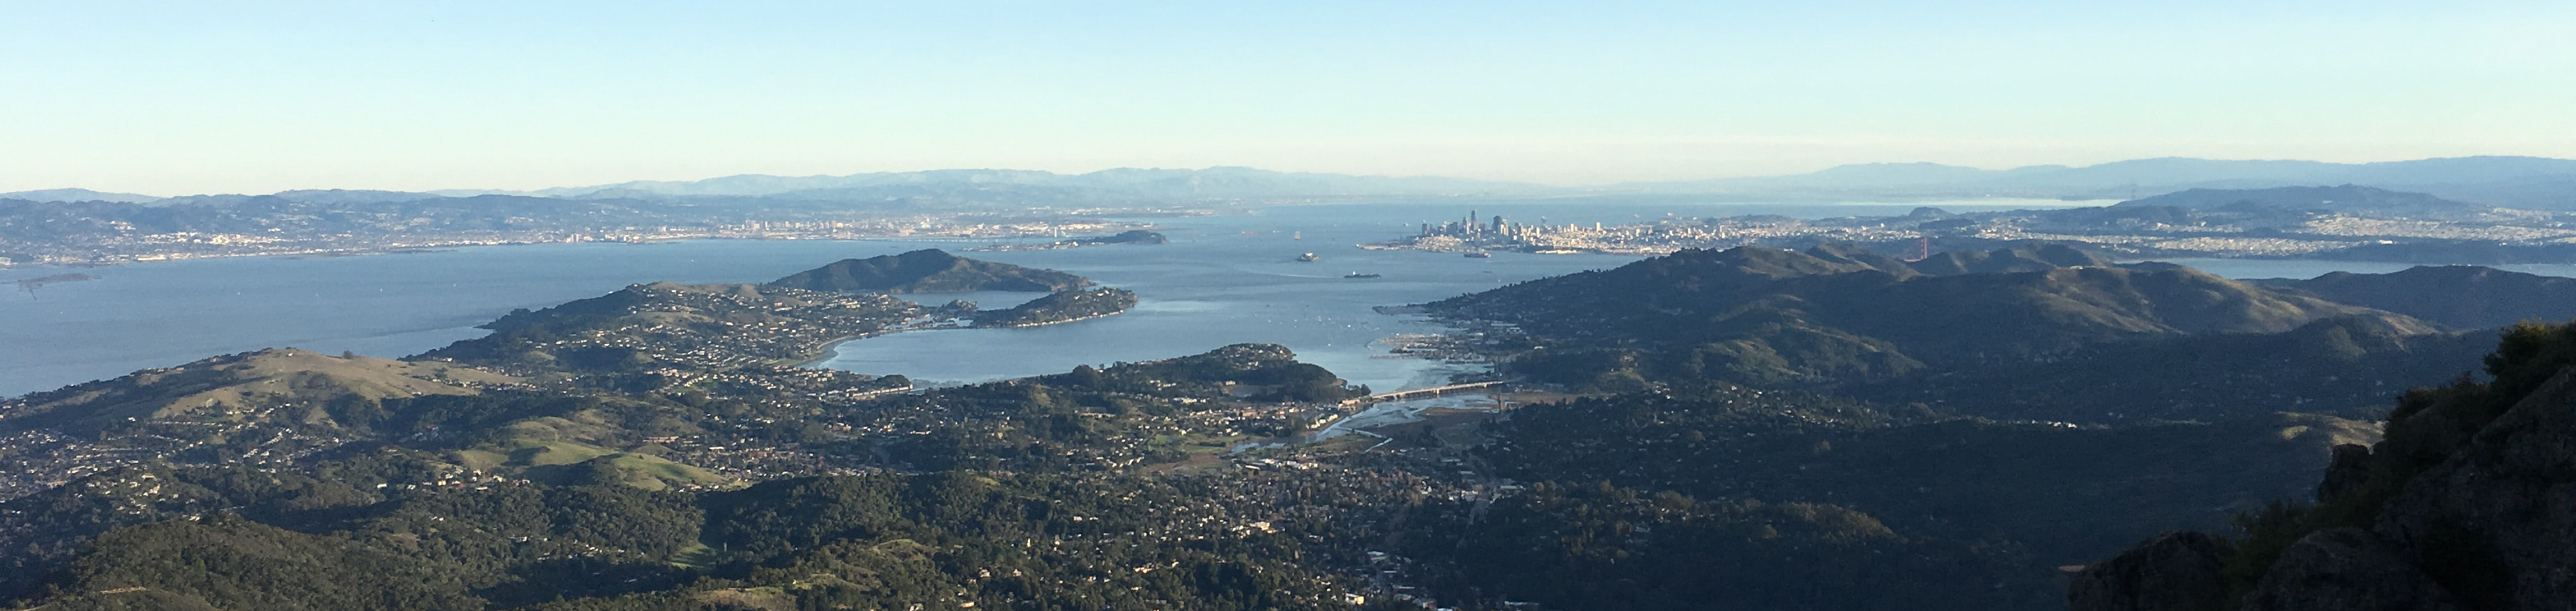 Photo of the Bay from the north on top of Mount Tamalpais. Photo courtesy of Jim Harris via Unsplash.